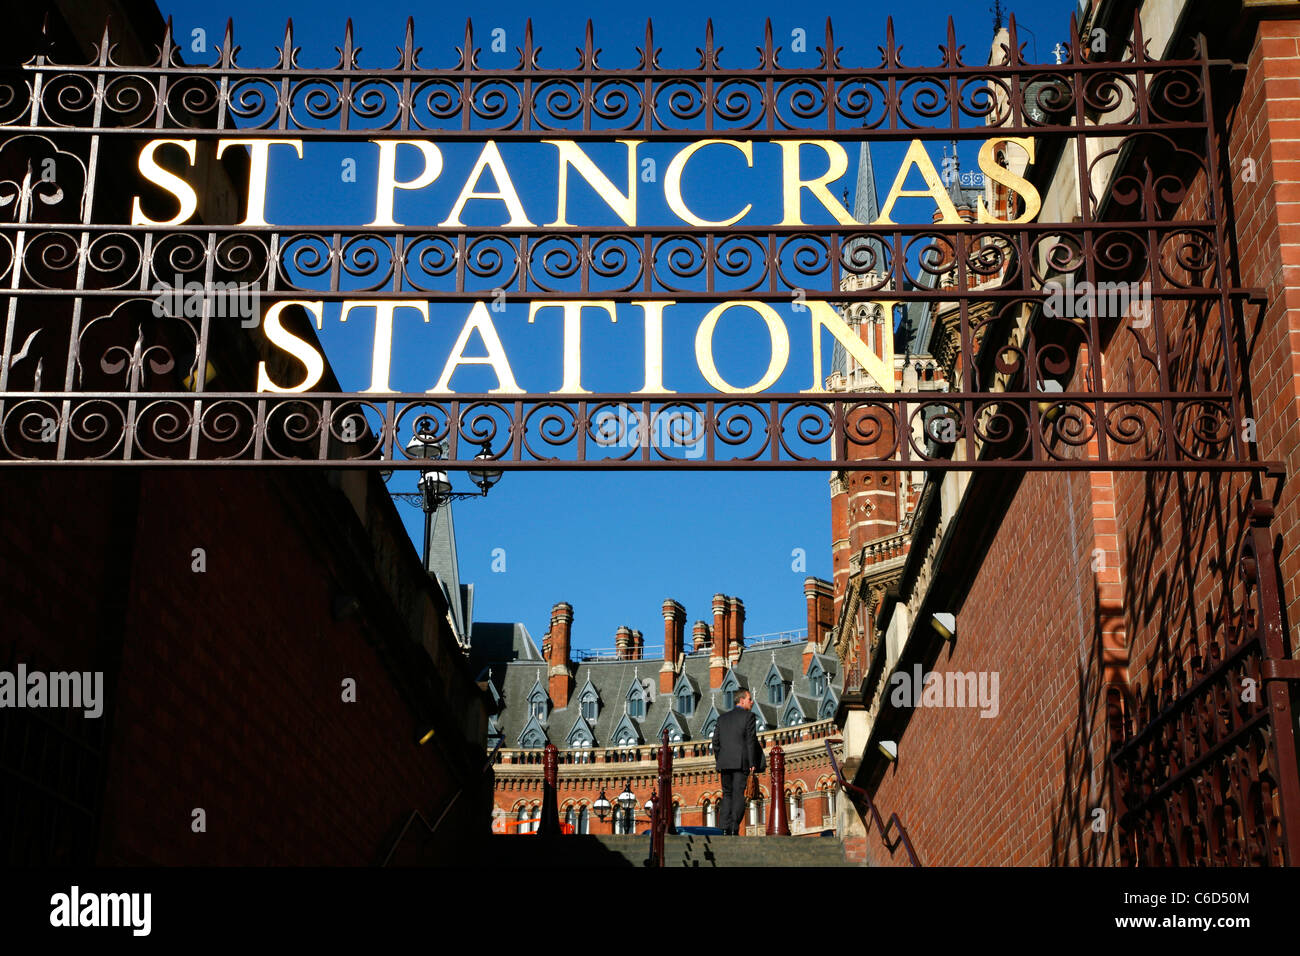 Old entrance to St Pancras Station (and St Pancras Renaissance Hotel), St Pancras, London, UK - Stock Image